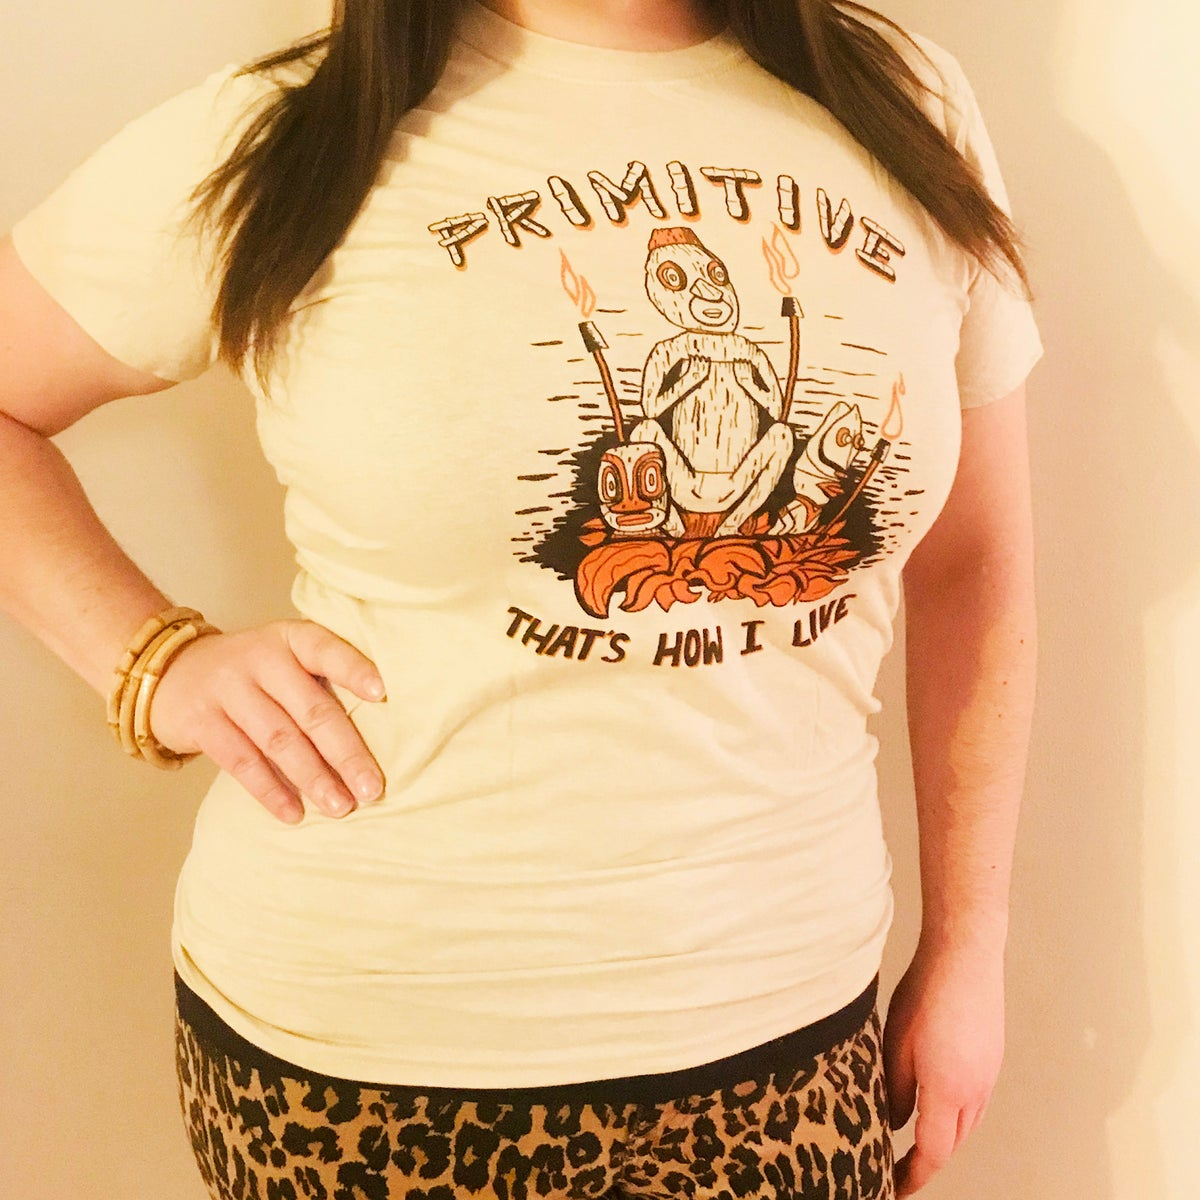 PRIMITIVE - That's How I Live! Mai Kai/Cramps Mash-up Men's T-Shirt